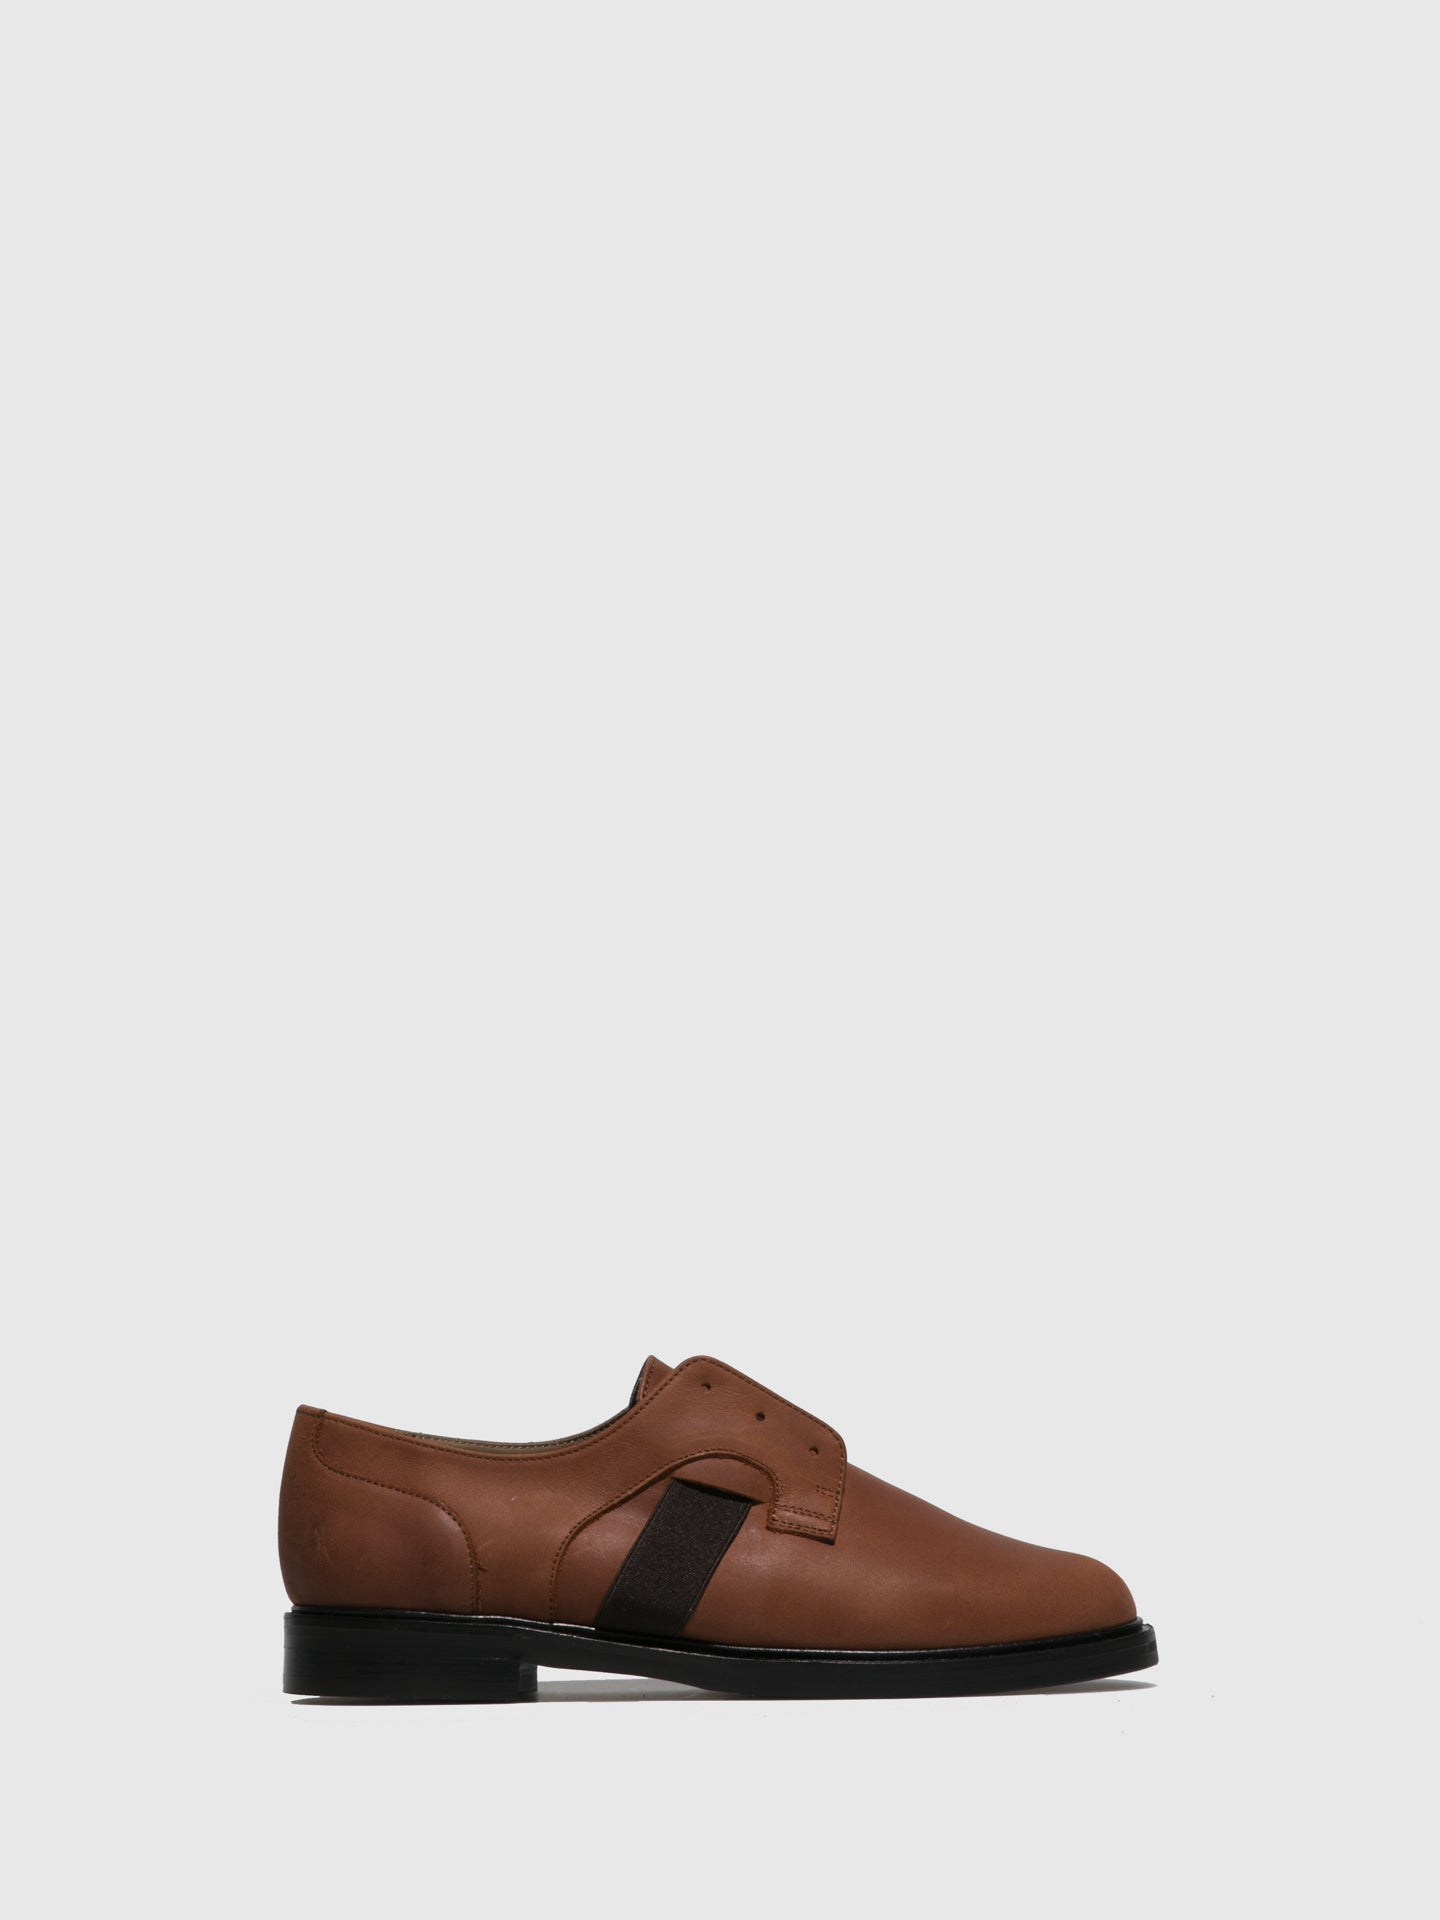 JJ Heitor Camel Slip-on Shoes